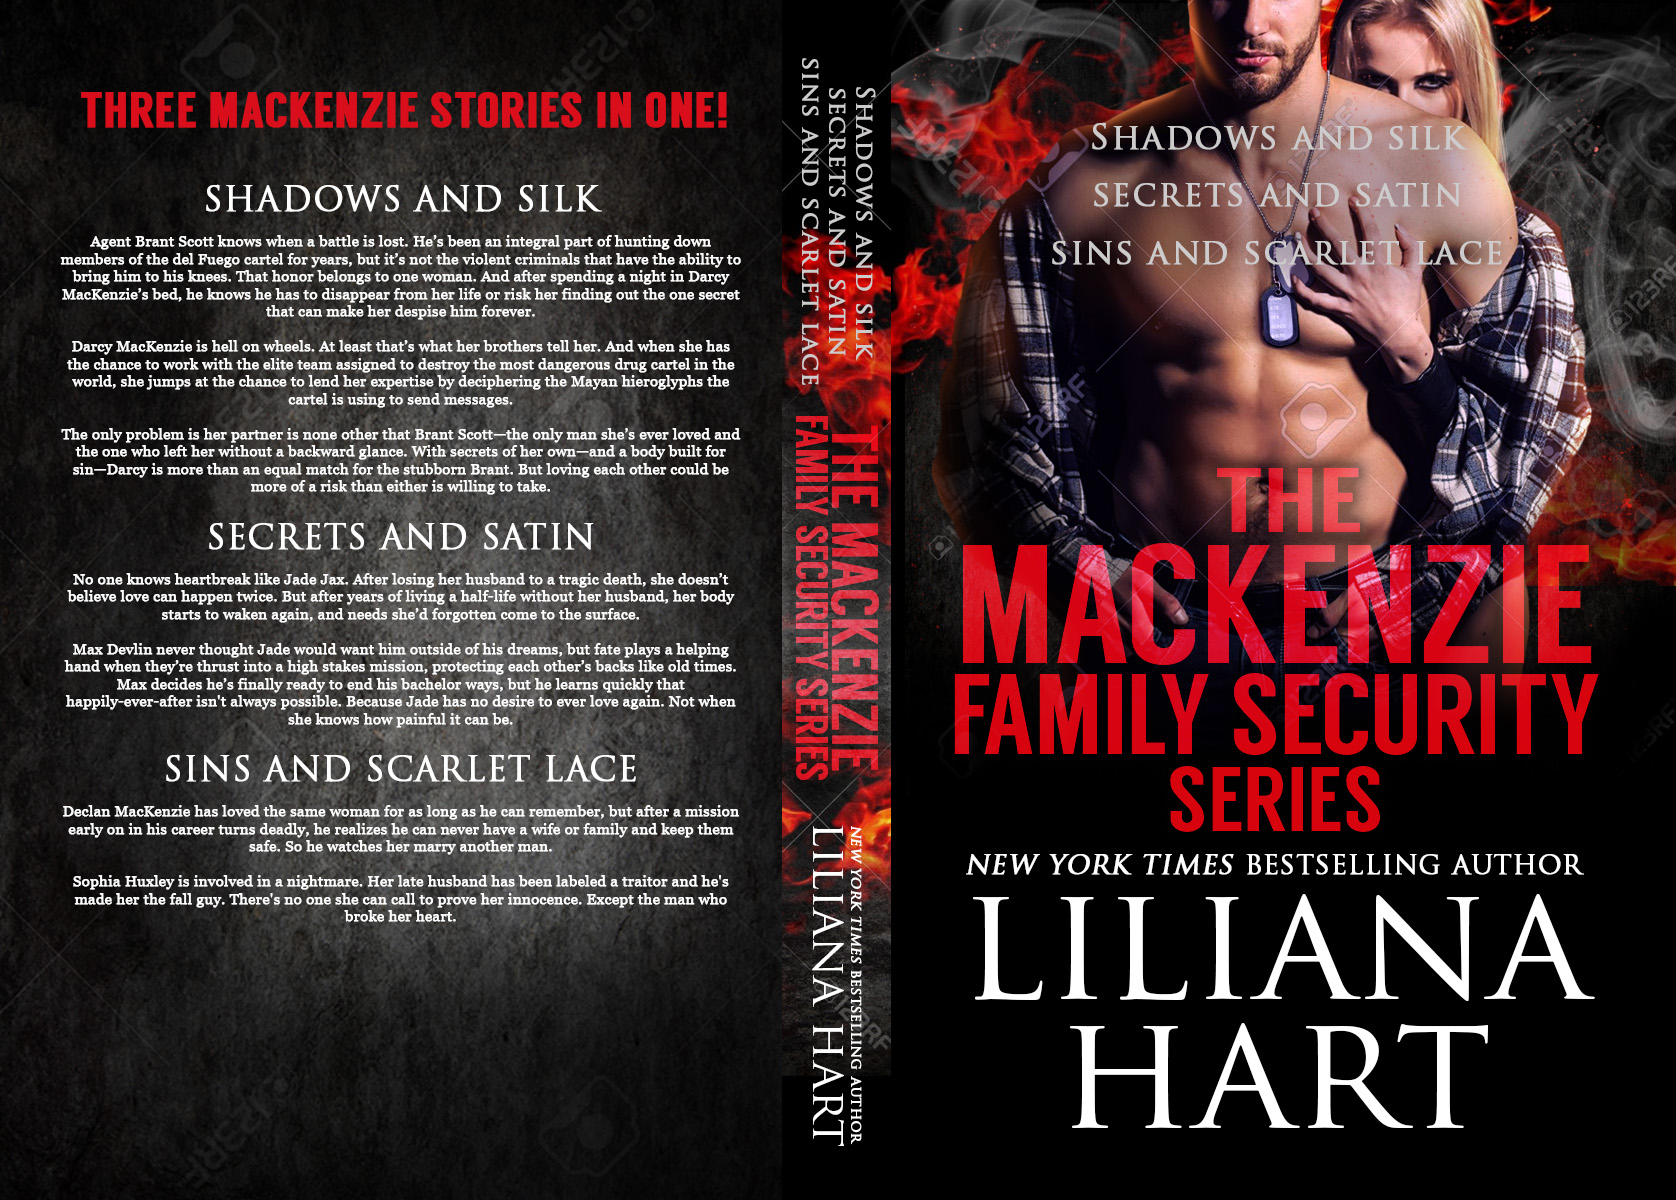 The MacKenzie Family Security Series full concept